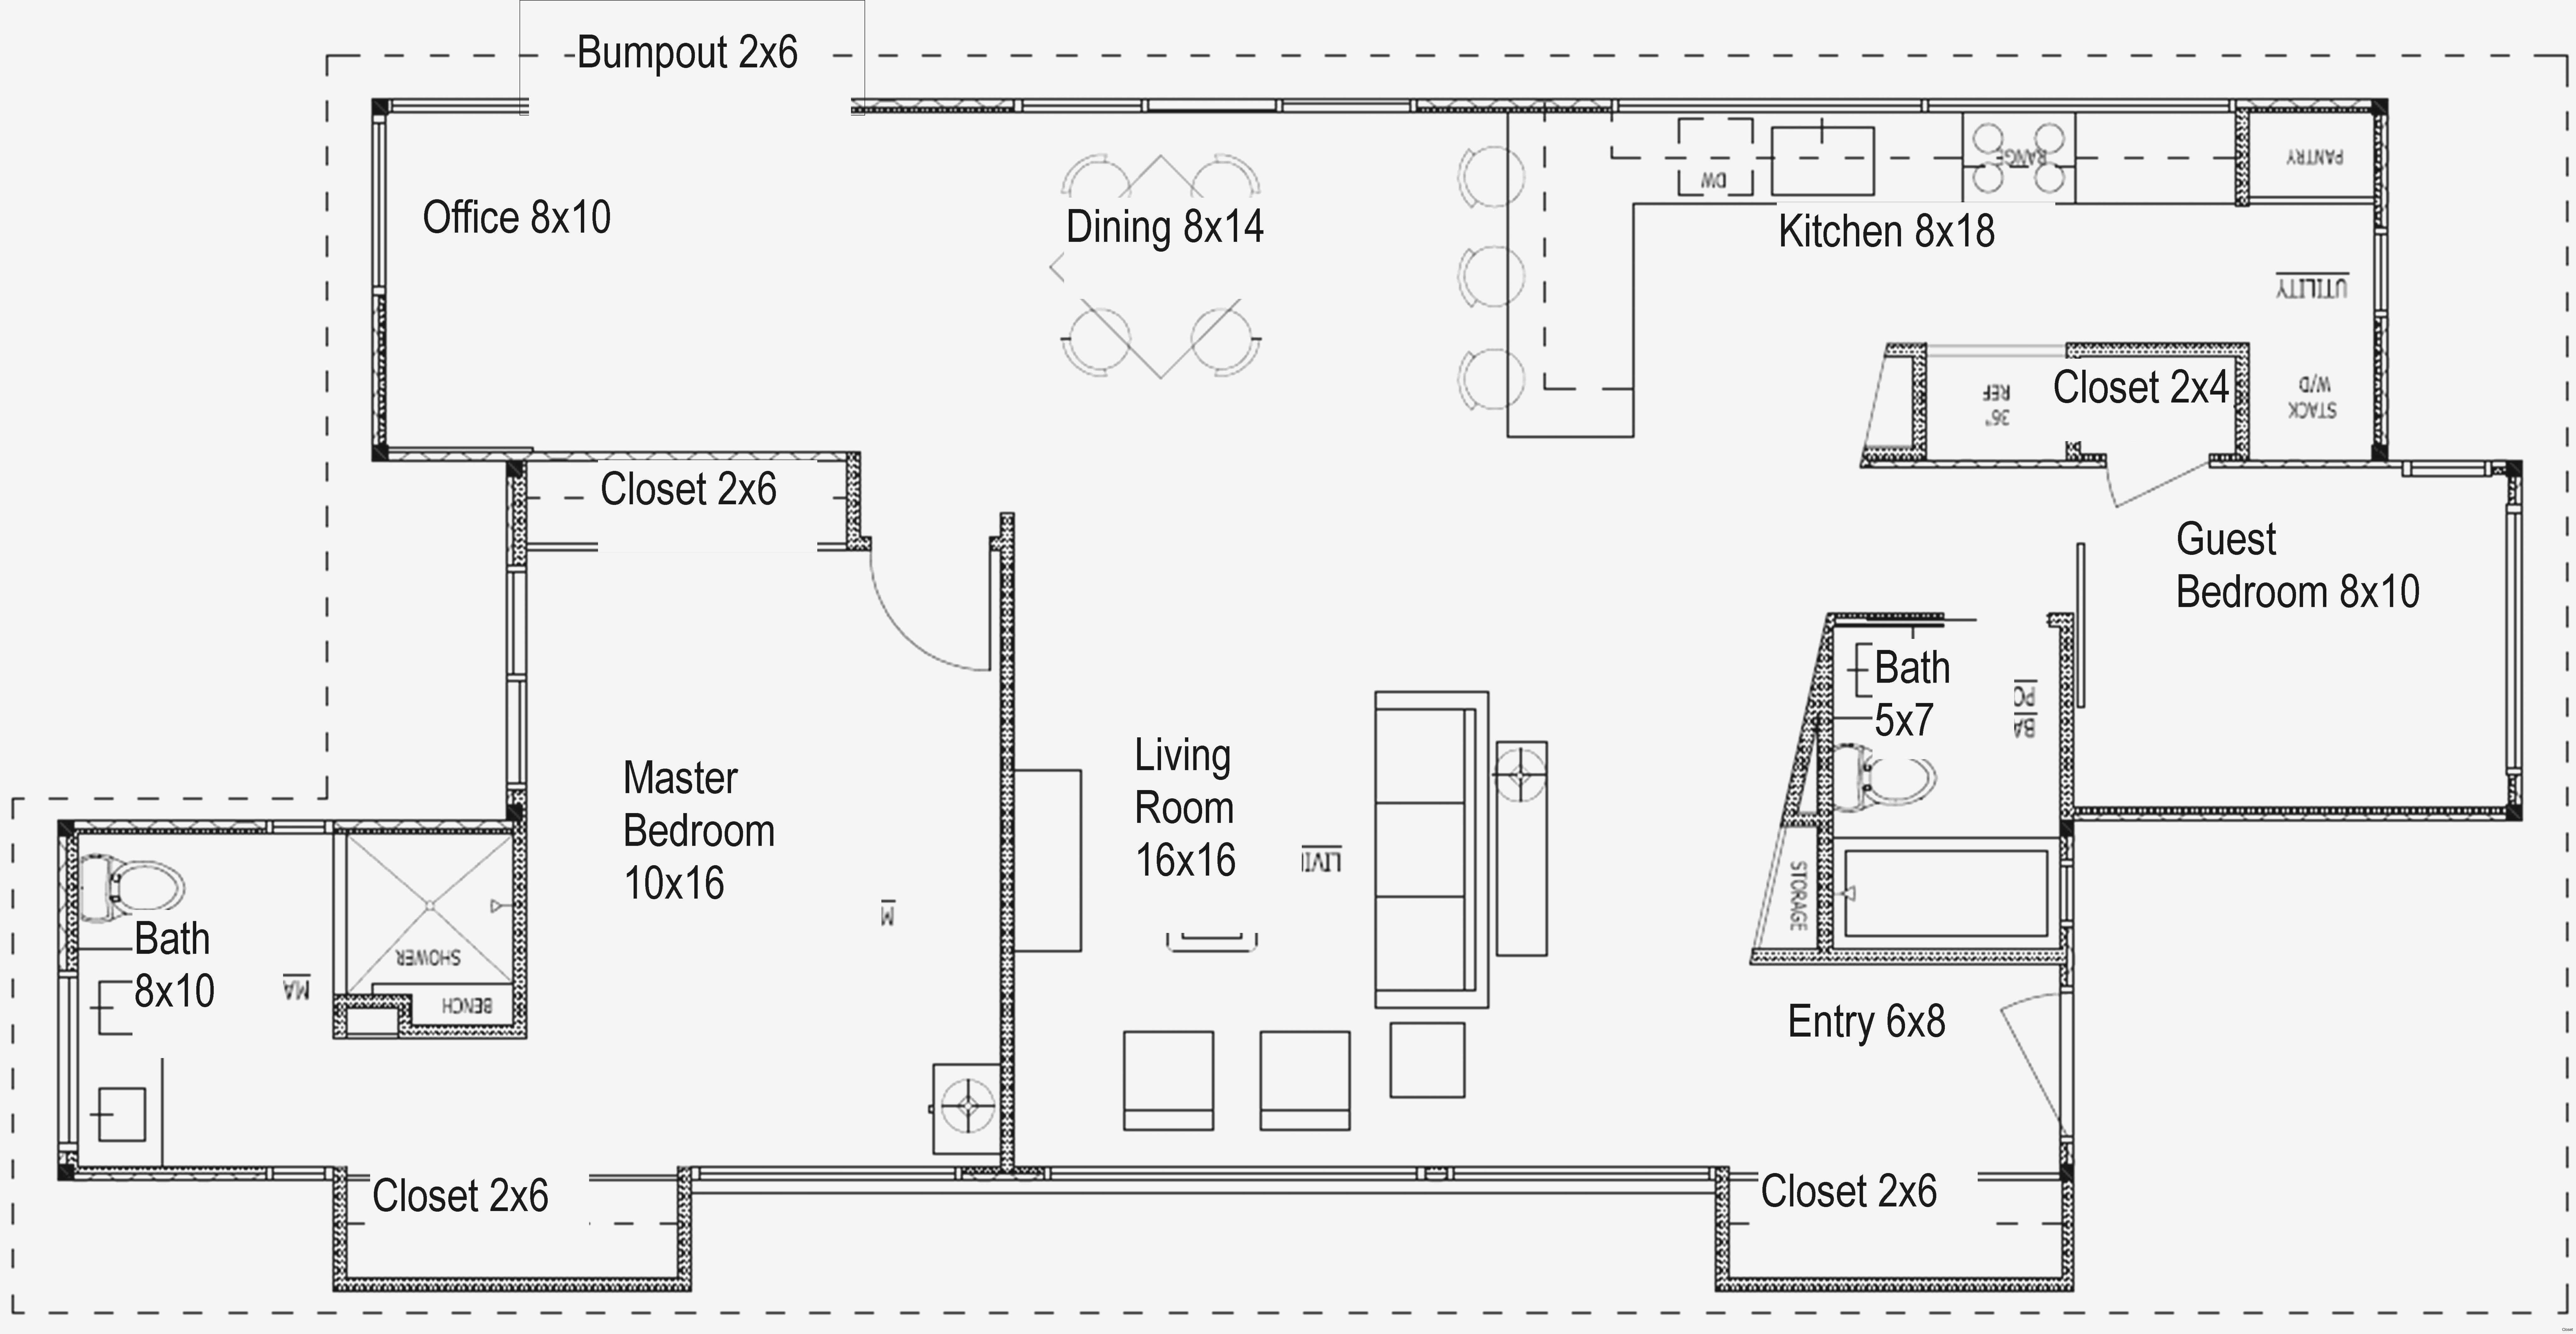 Best ideas about Average Master Bedroom Size . Save or Pin Average Size for Master Bedroom Best Best Walk In Now.